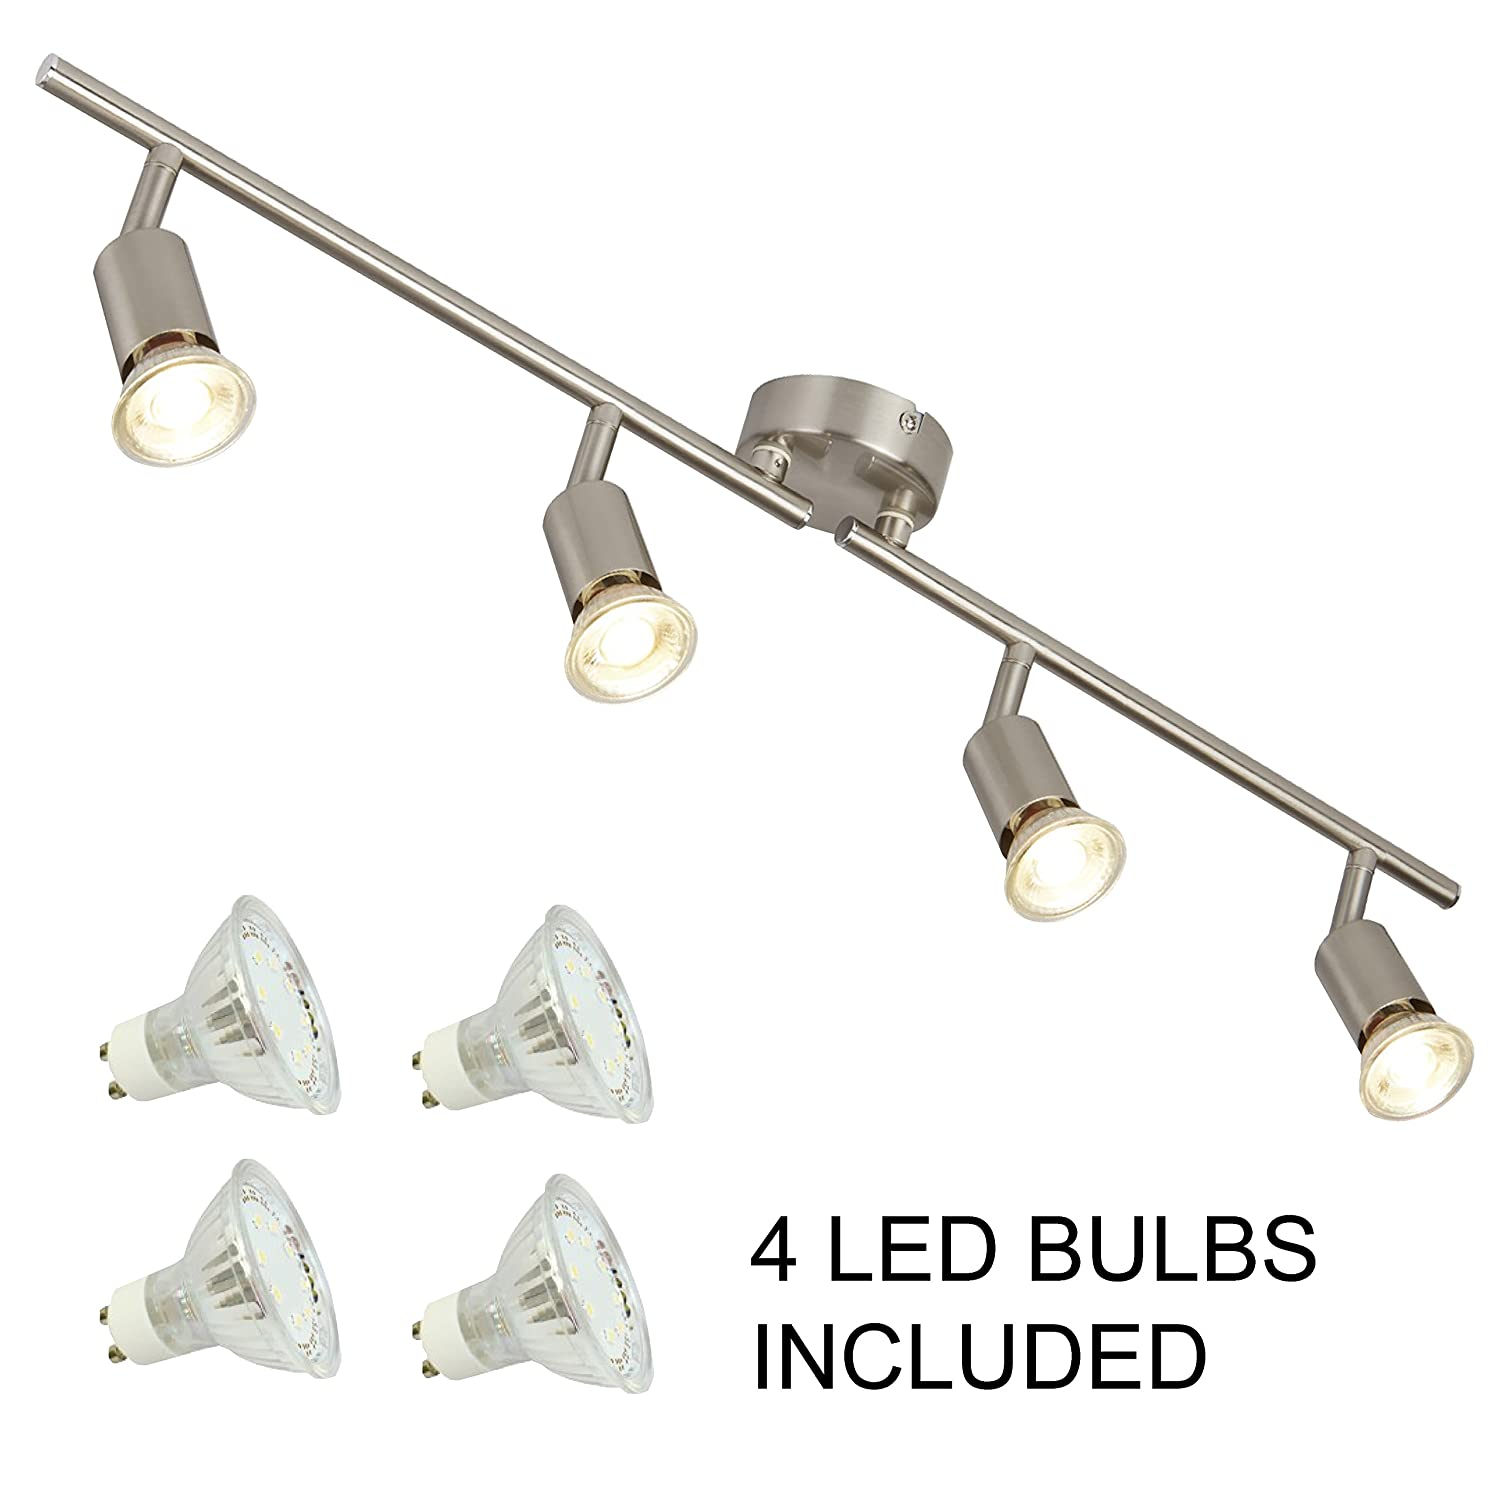 4 Bar Ceiling Spotlight in Satin Silver with 4 2W Led Bulbs by Laeto Lighting Ideal for Kitchen Bedroom Lounge Office Searchlight Electric